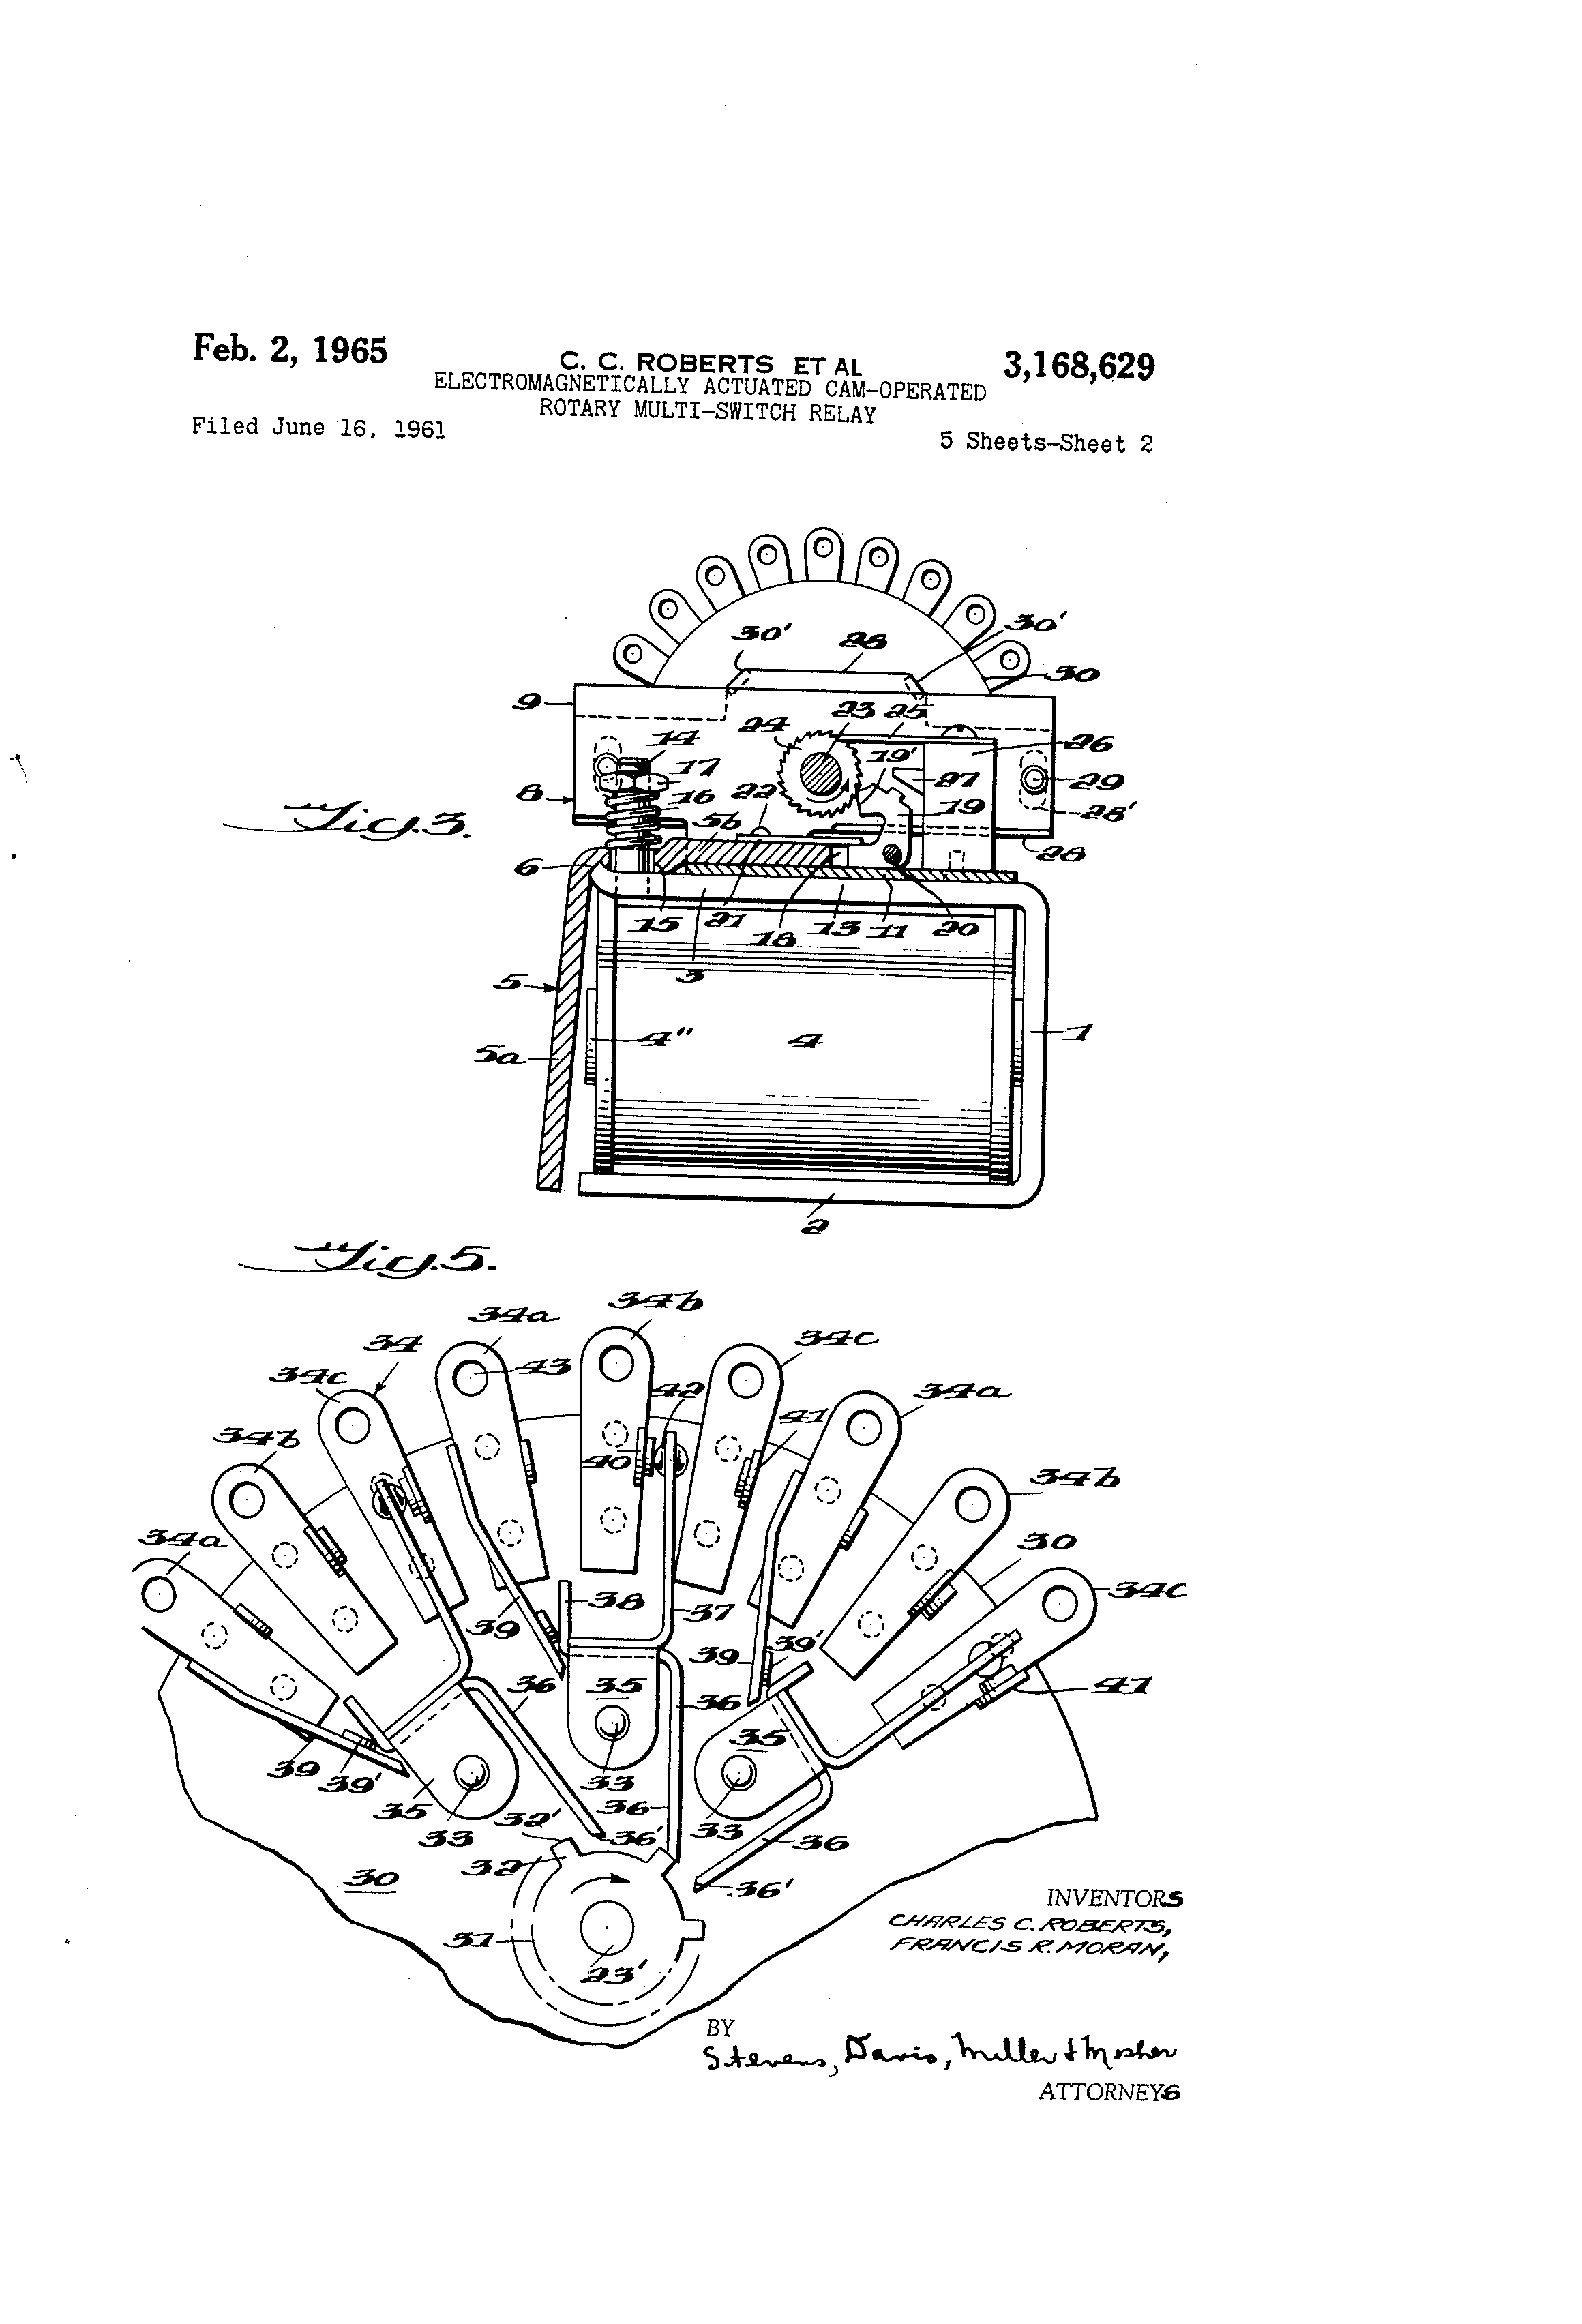 Switch Drawing At Free For Personal Use Relay 2320x3408 Patent Us3168629